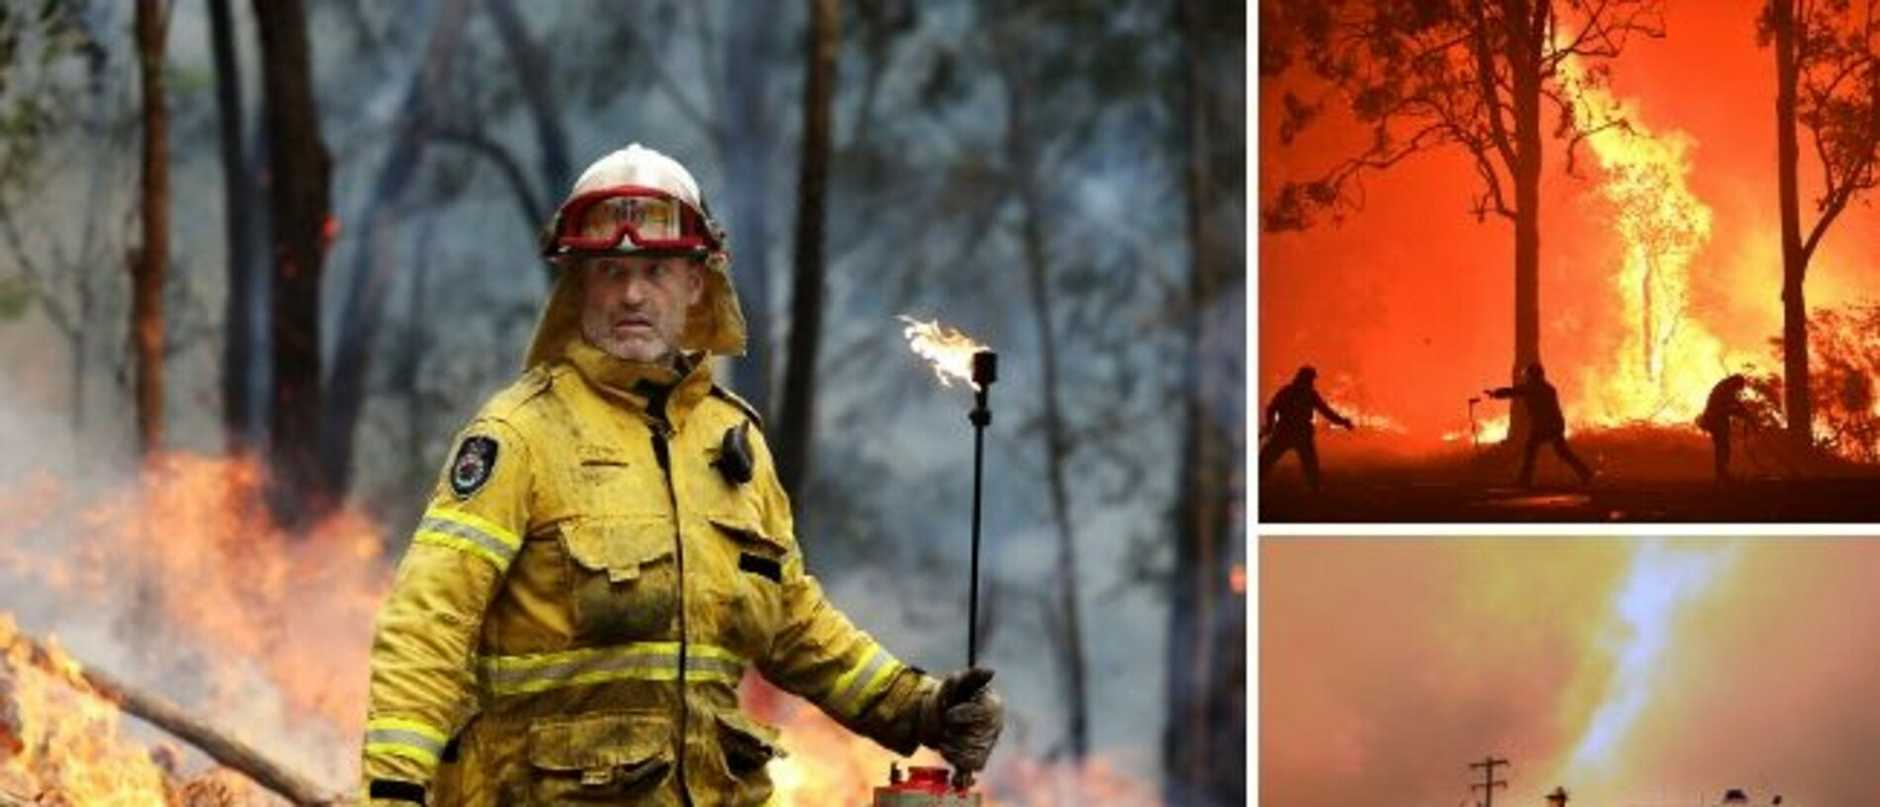 The extreme risk faced by firefighters during one of the toughest bushfire seasons on record have been honoured at the 2019 National Pride of Australia Awards.